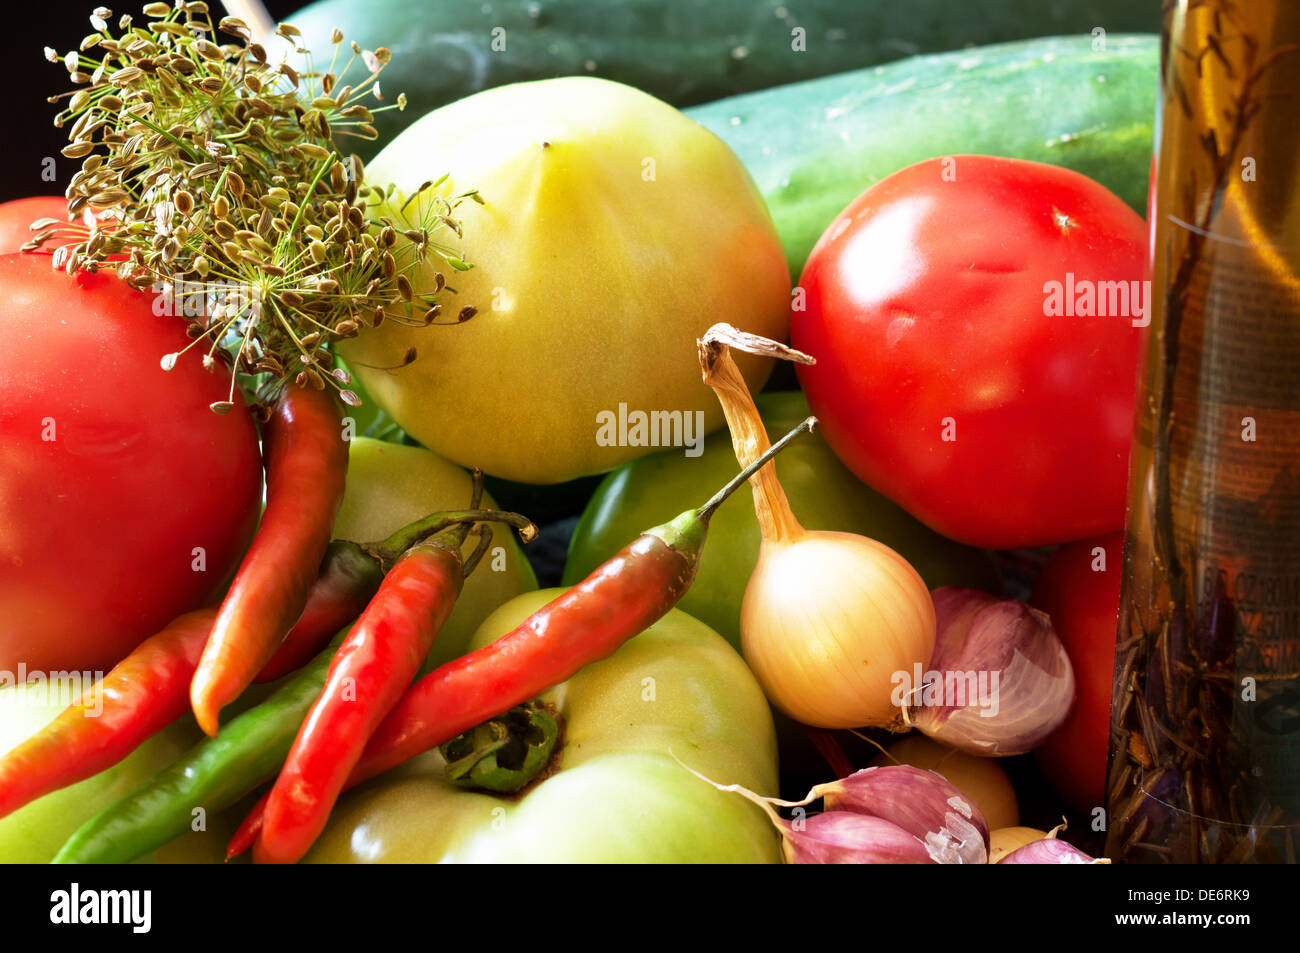 Ingredients for pickles including tomatoes (red and green) cucumbers, hot peppers, onions (red and white), garlic, and dill - Stock Image